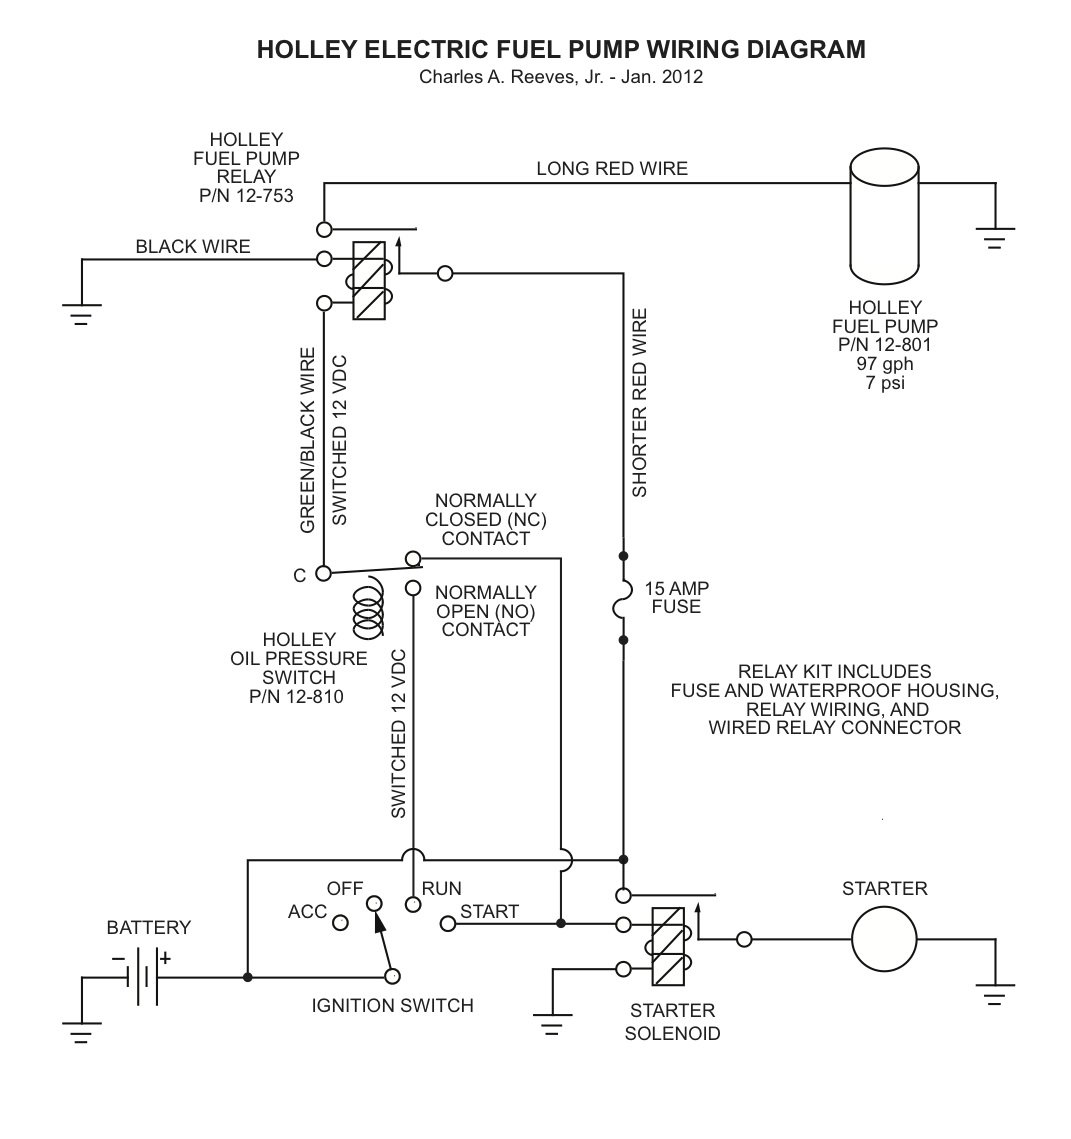 146291d1325616423 installing holley electric fuel pump 1966 mustang elect fuel pump wiring diagram installing a holley electric fuel pump in a 1966 mustang ford on holley electric fuel pump wiring diagram